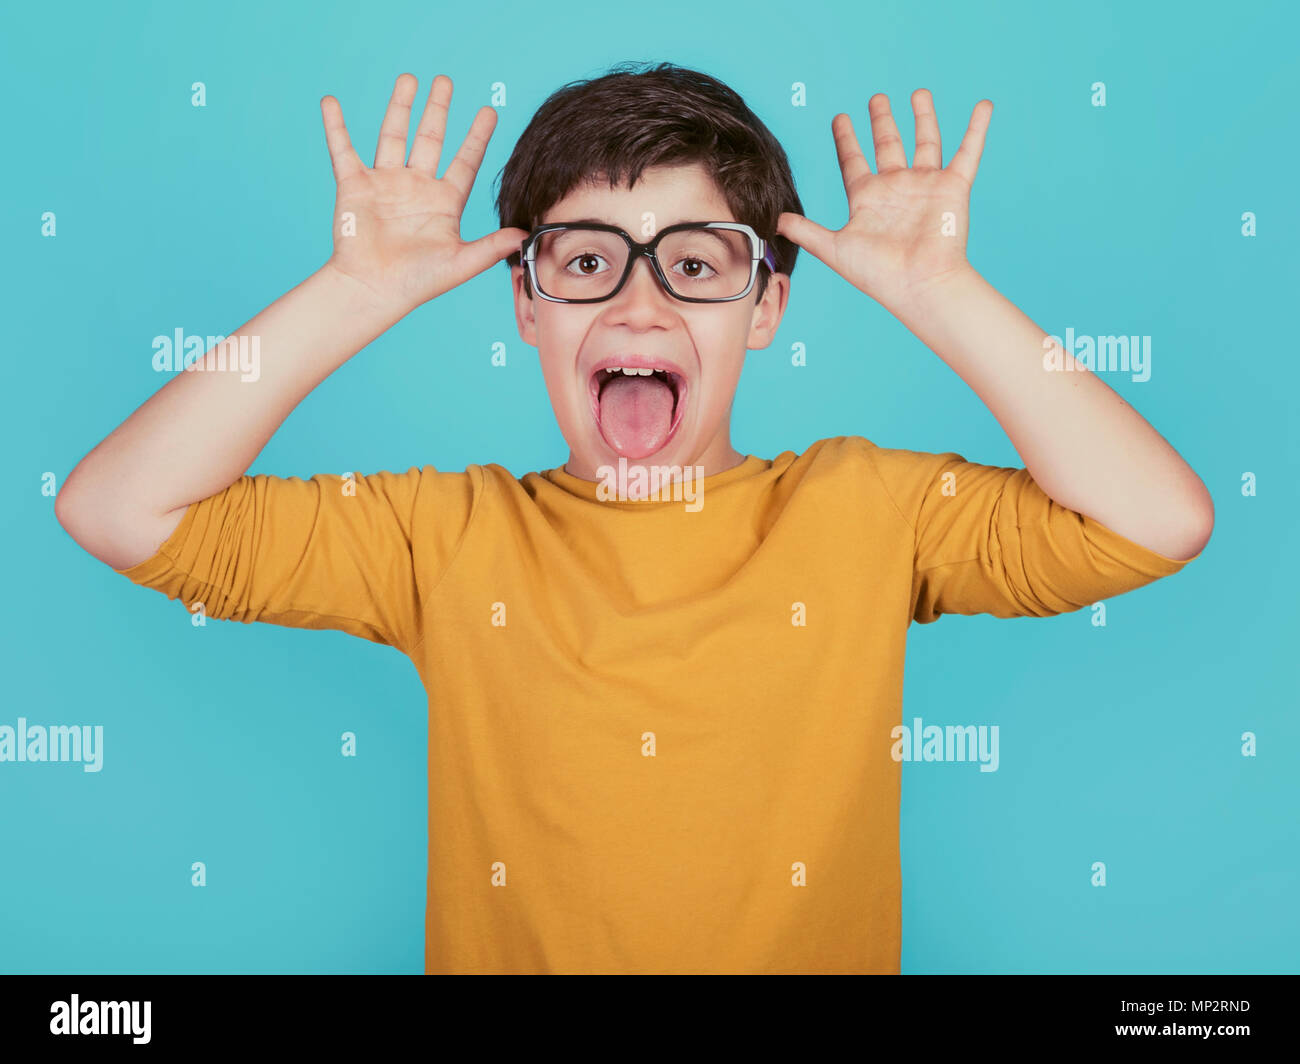 funny boy with glasses show out his tongue on blue background - Stock Image